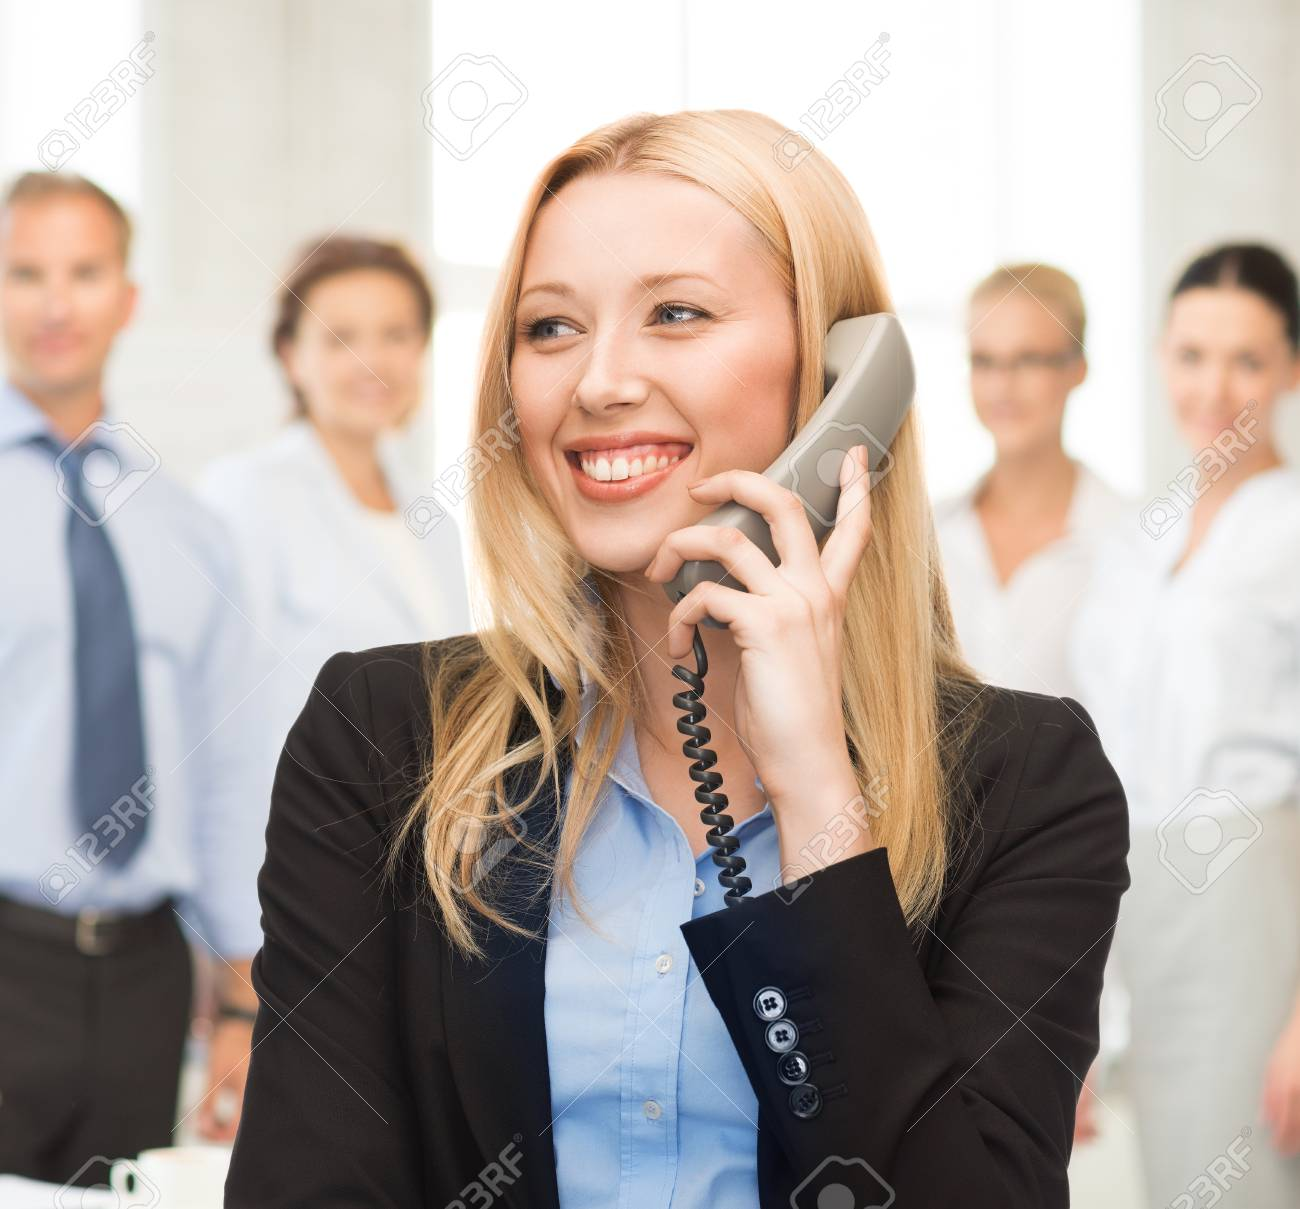 bright picture of smiling woman with phone in office Stock Photo - 20595445